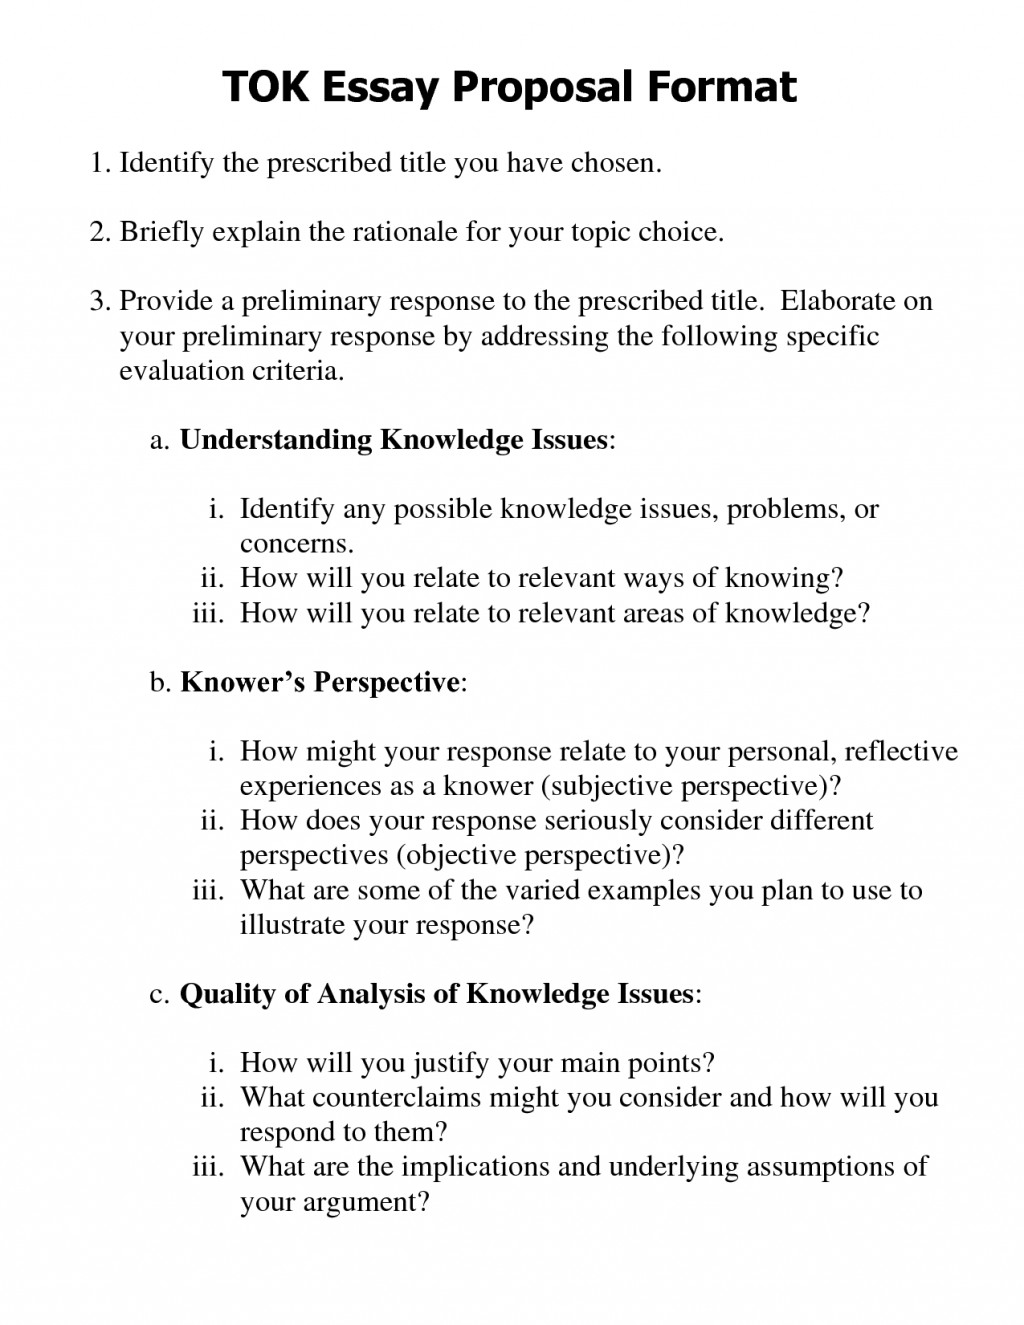 002 Olxkktmp0l What Is Proposal Essay Top A The Purpose Of Good Topic Argument Large